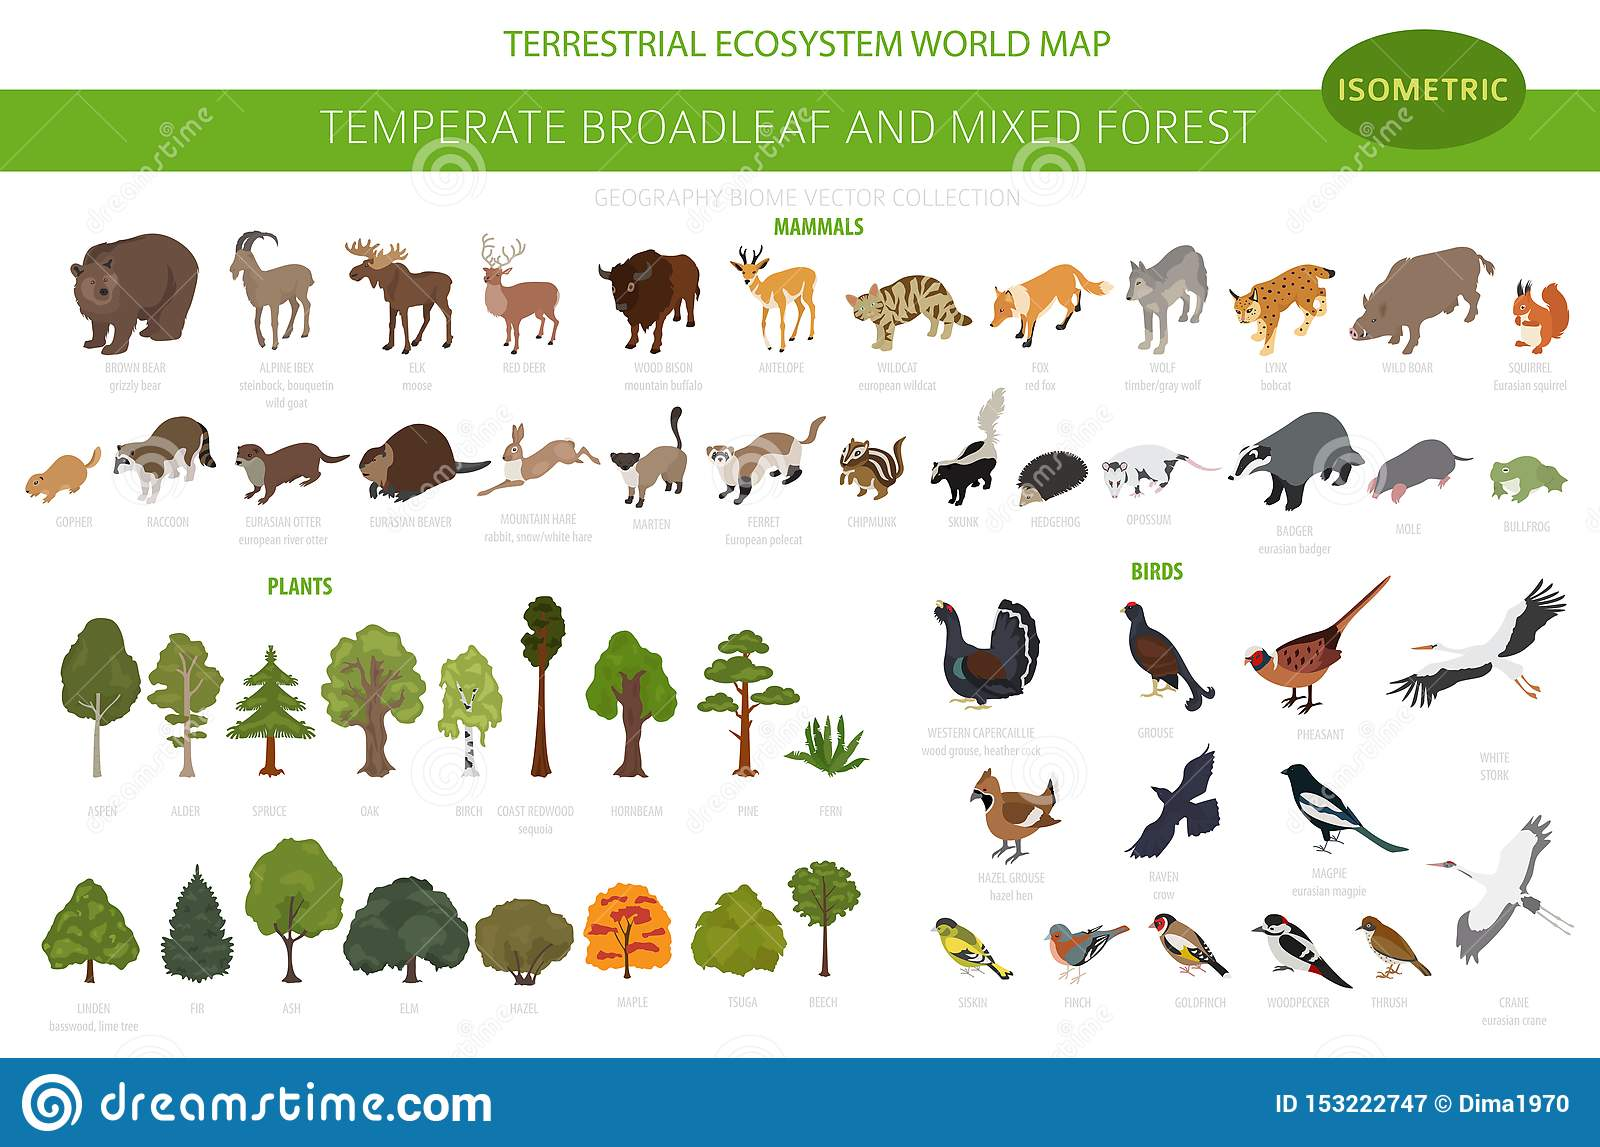 Canadian journal of forest research. Temperate Broadleaf Forest And Mixed Forest Biome Terrestrial Ecosystem World Map Animals Birds And Plants Set 3d Isometric Stock Vector Illustration Of Climate Goldfinch 153222747